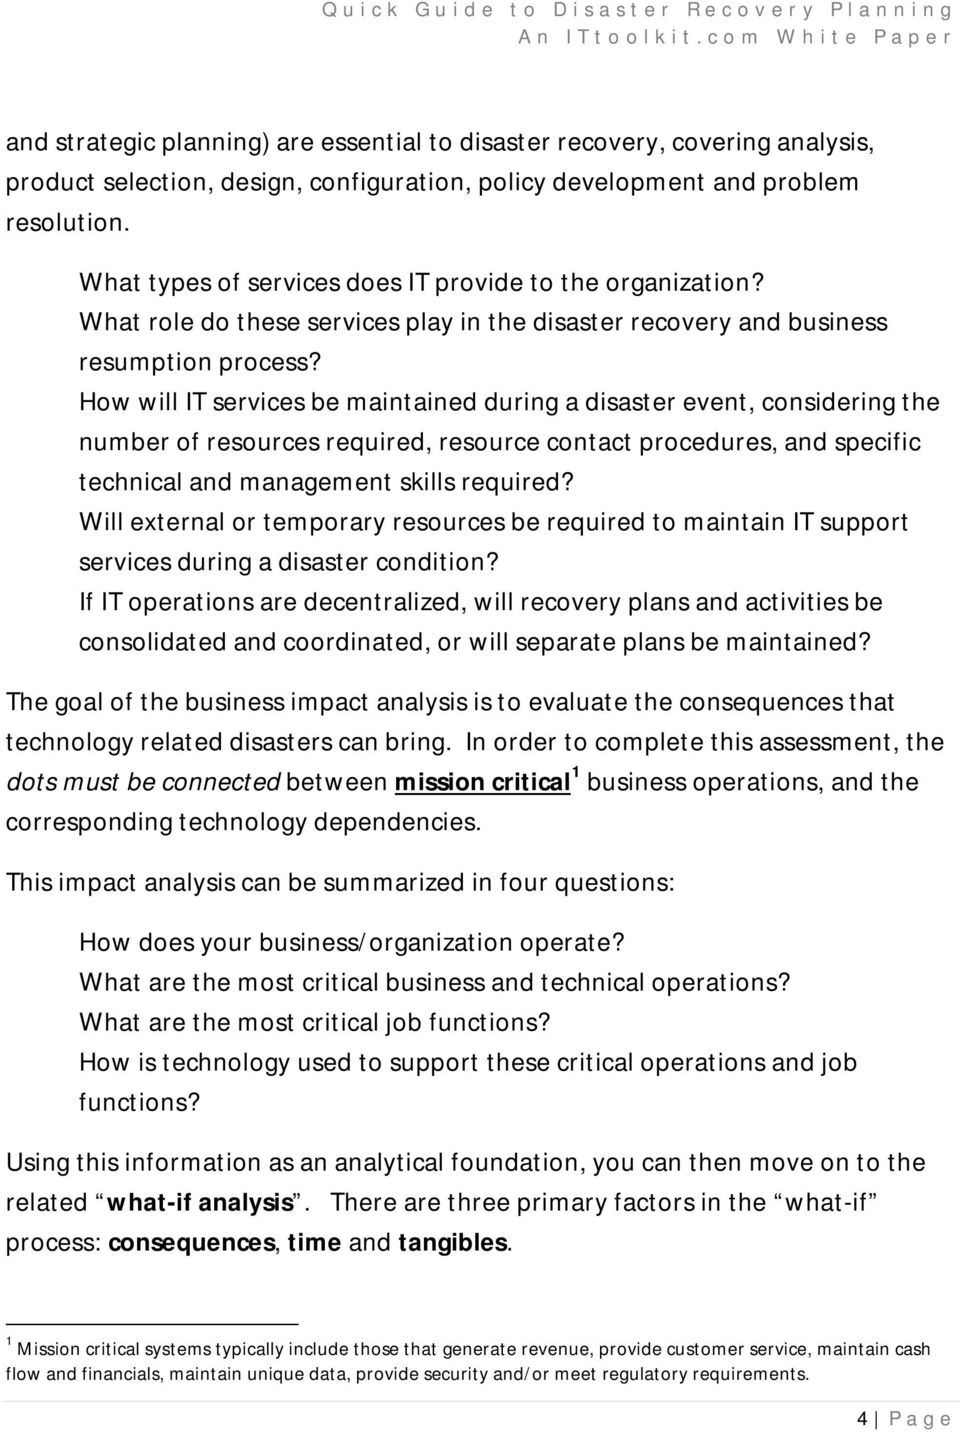 How will IT services be maintained during a disaster event, considering the number of resources required, resource contact procedures, and specific technical and management skills required?